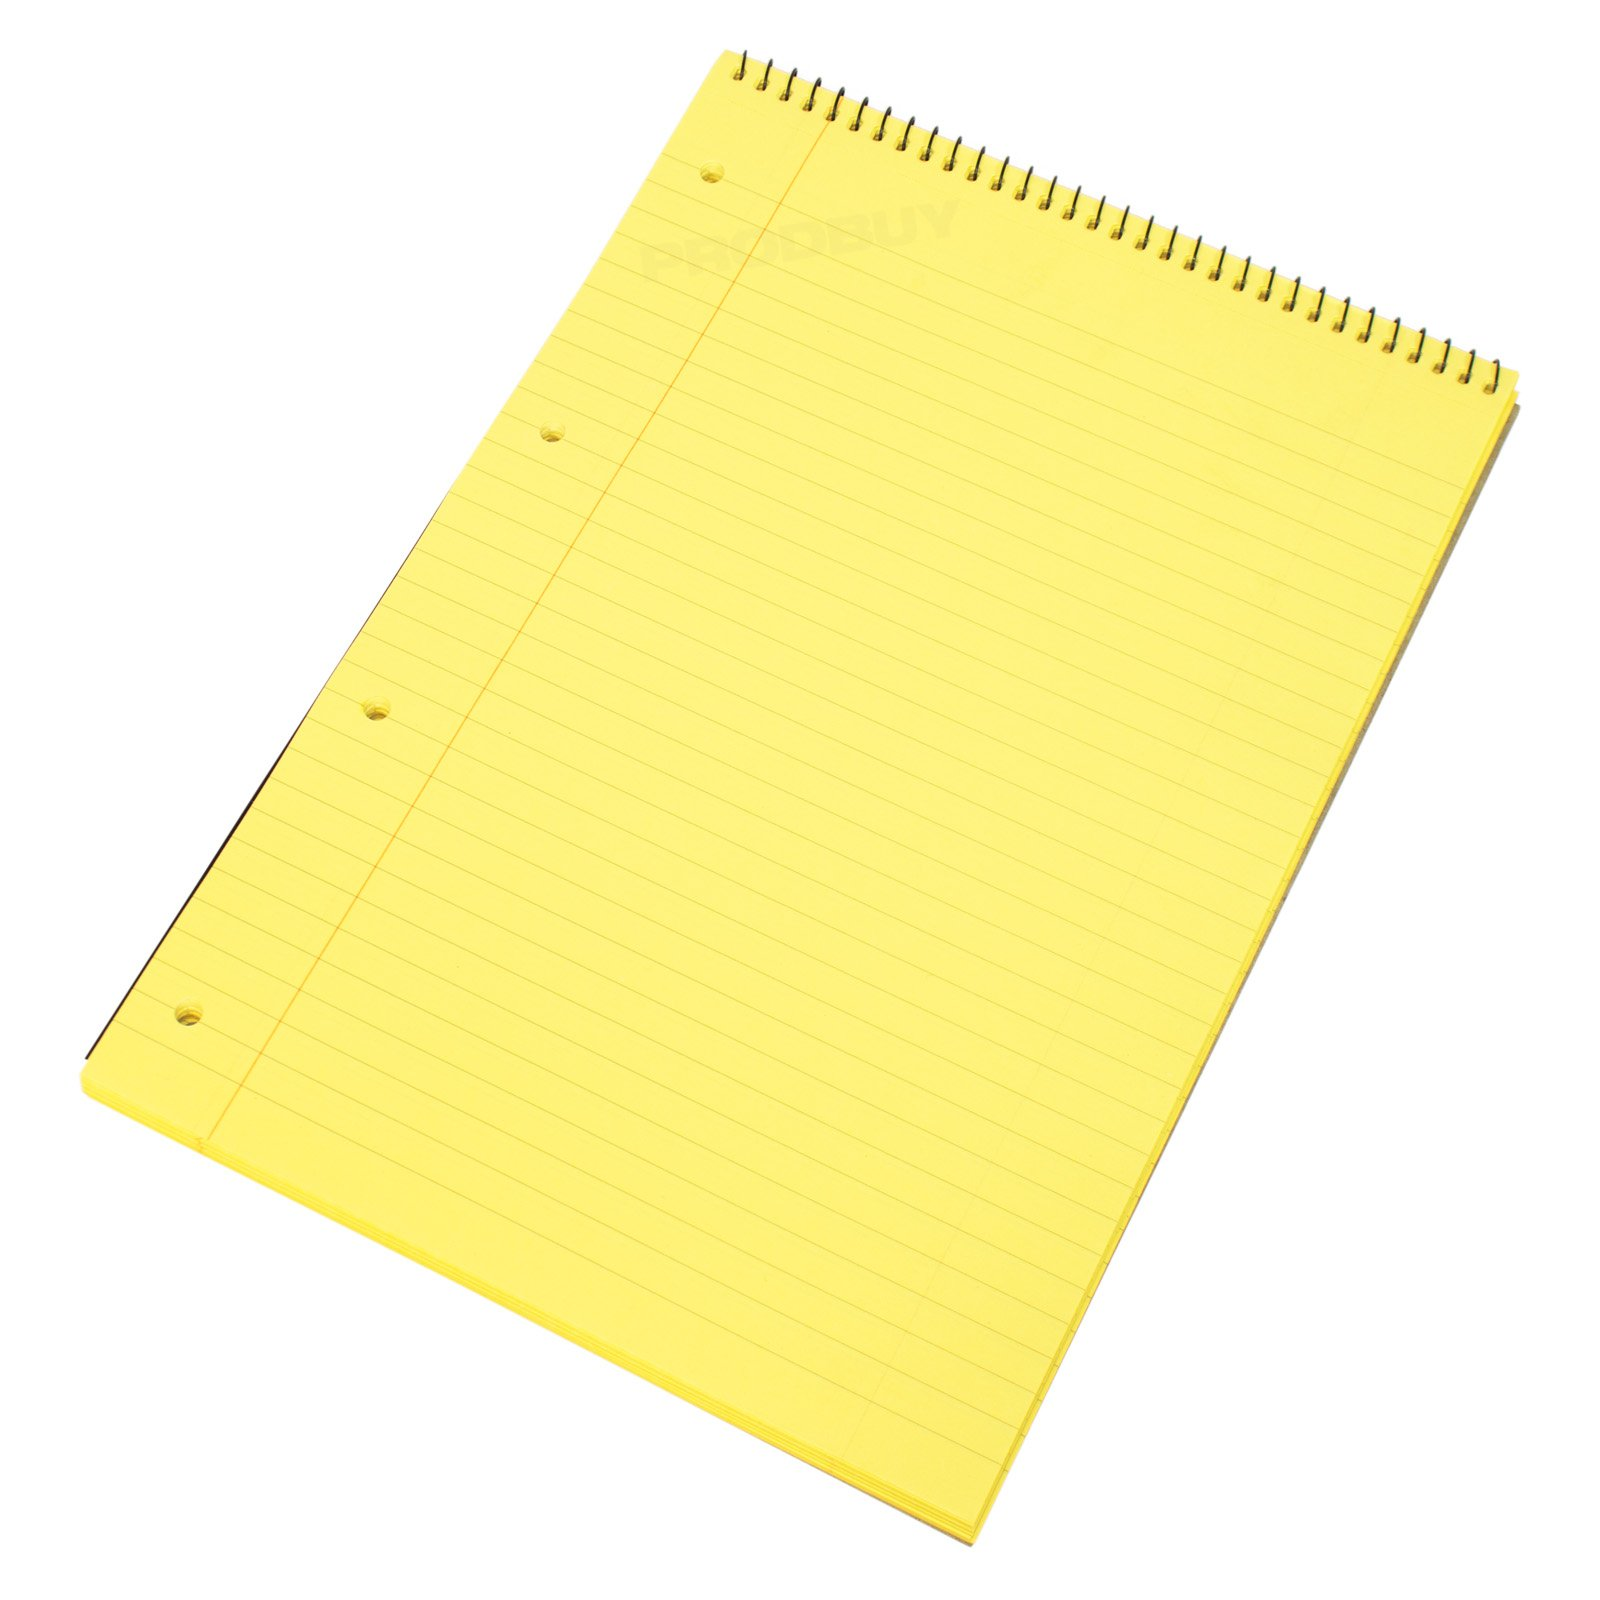 [Pack of 5] Spiral Memory Aid A4 Yellow 160 Page Paper Notepad Refill Legal Lined Writing Pads